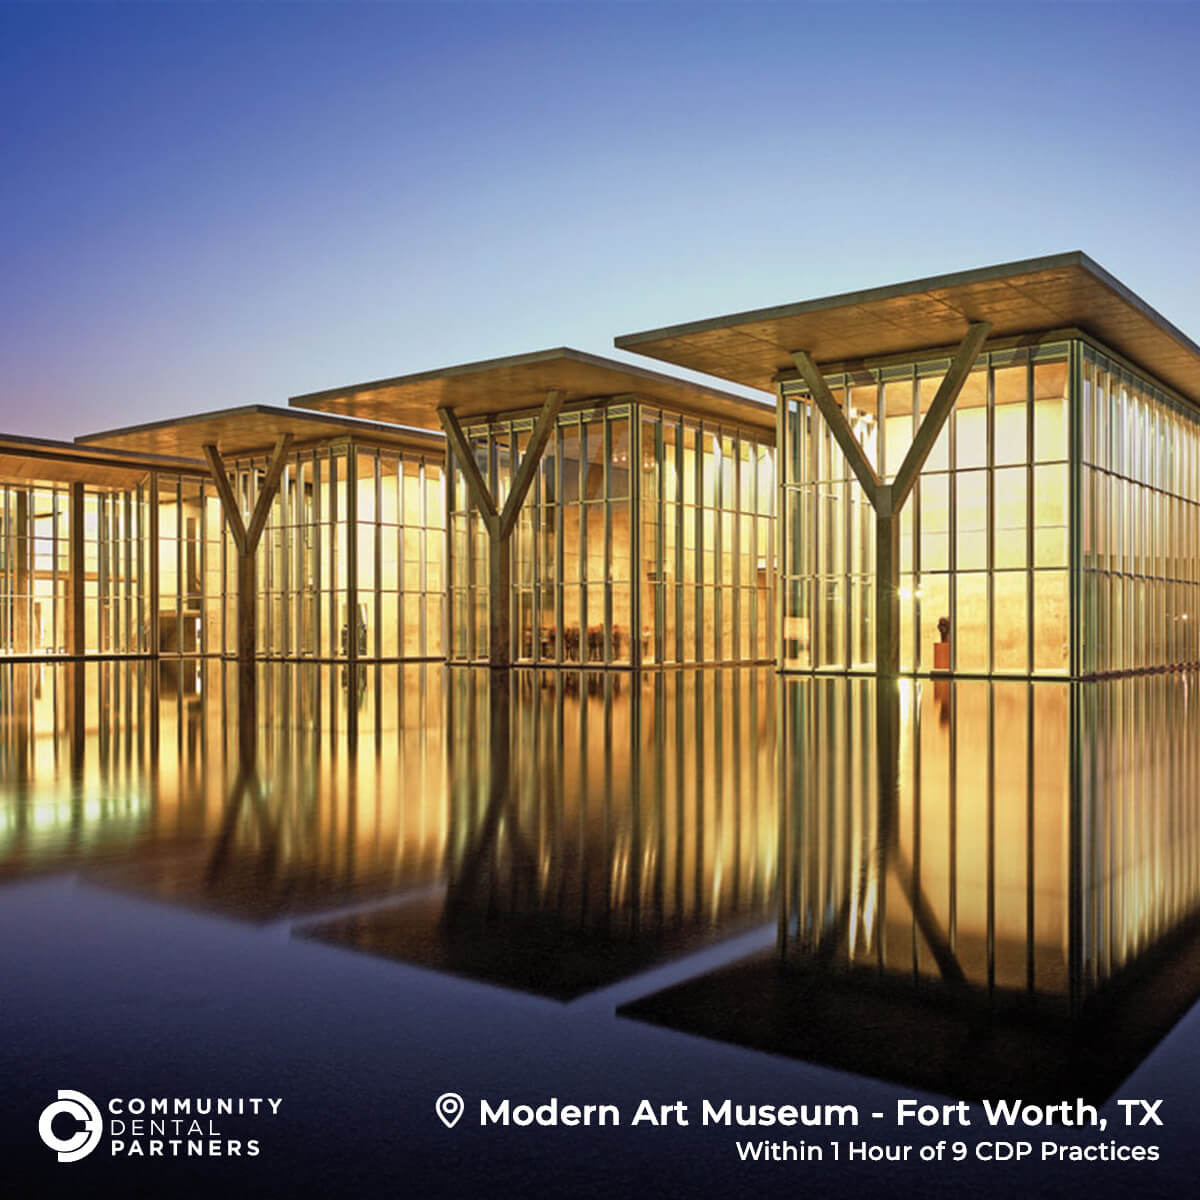 A photo of the Modern Art Museum in Fort Worth, Texas, located within 1 hour of 9 CDP practices.